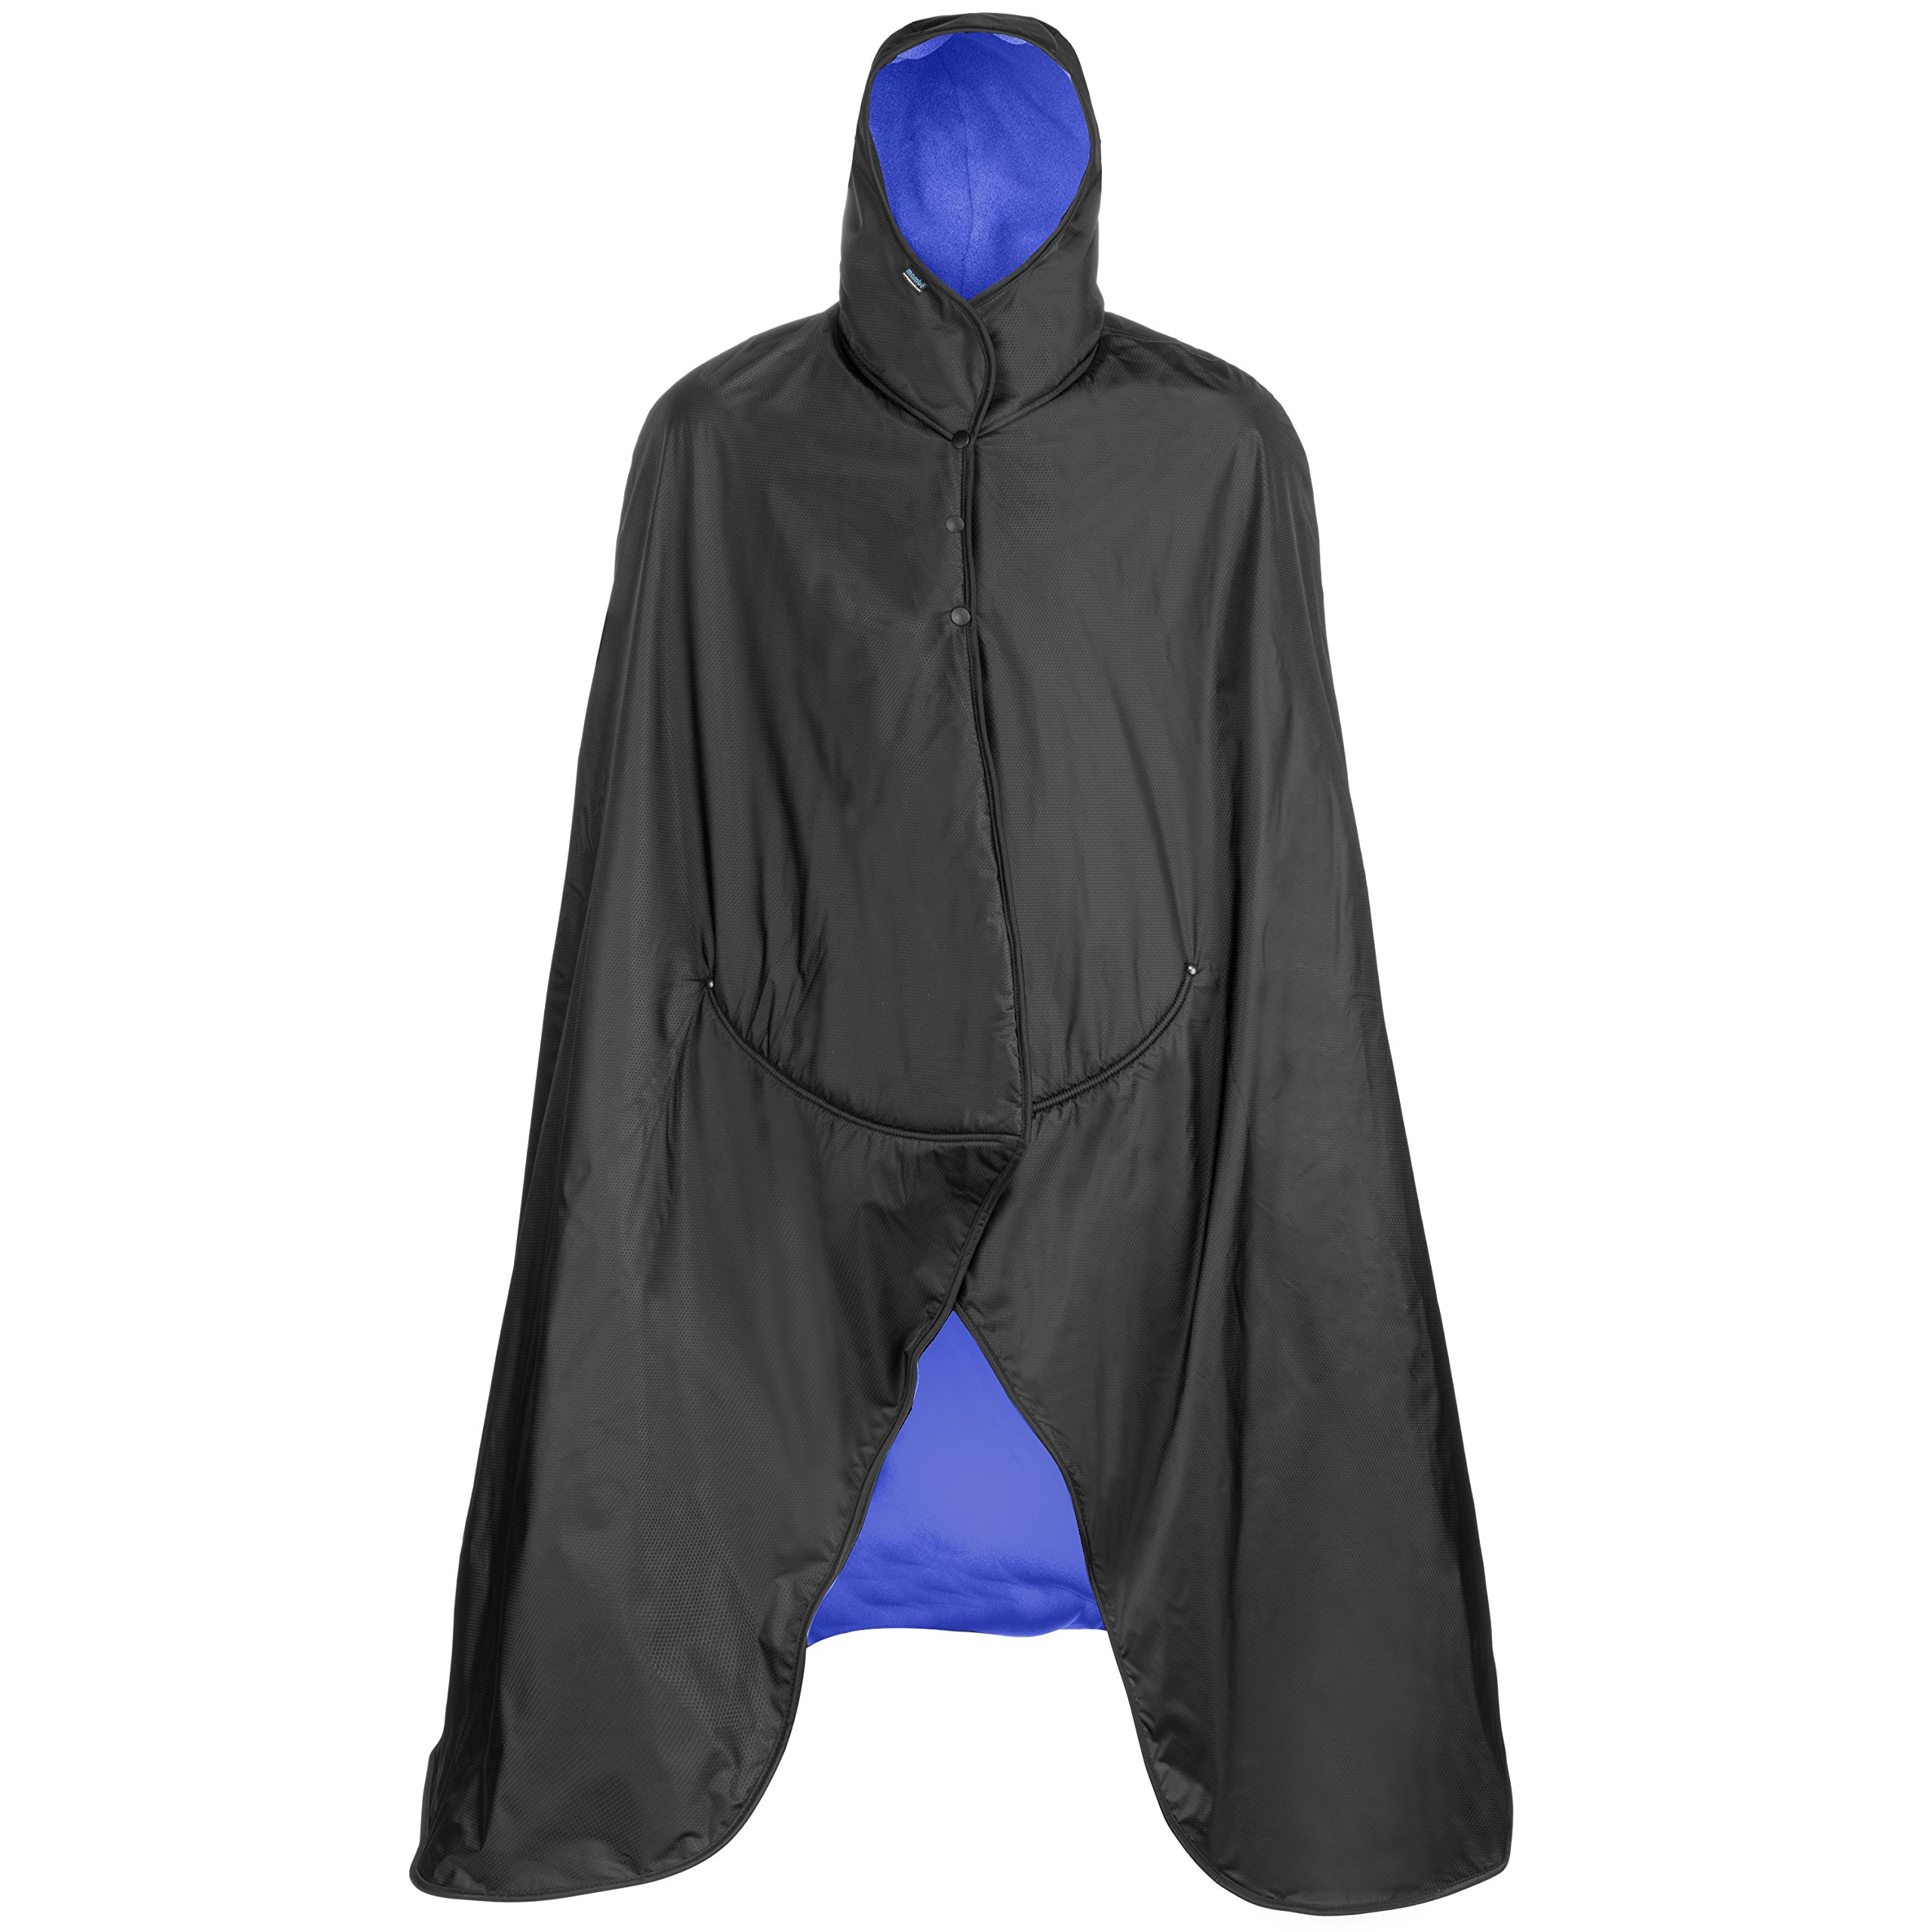 Mambe Extreme Weather 100% Waterproof/Windproof Hooded Blanket with Premium Stuff Sack (Size: Large, Black-Royal) Made in The USA by Mambe